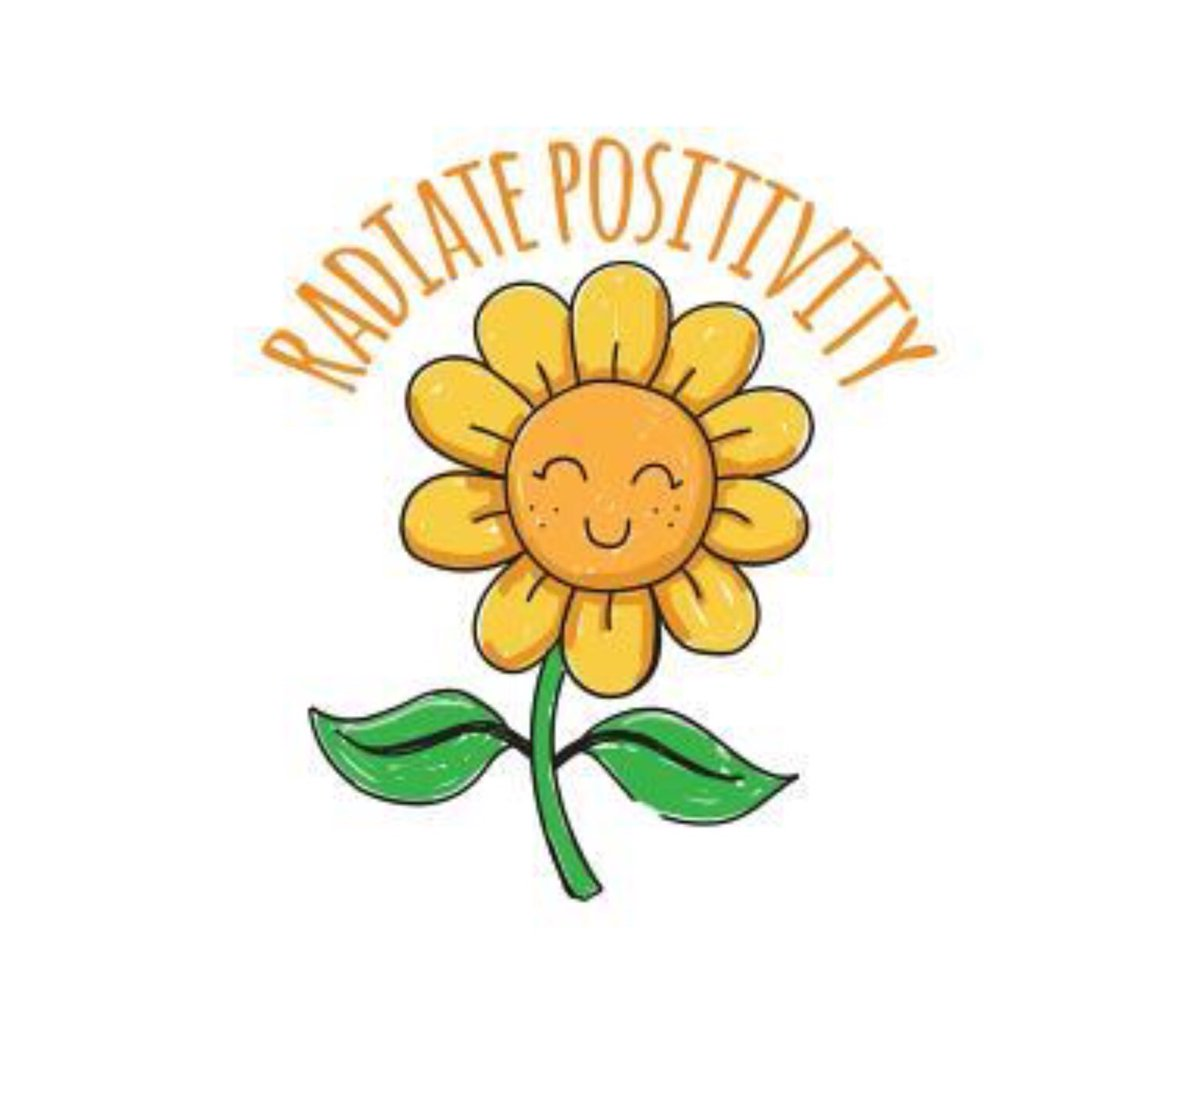 A3 Mindfulness allows us to radiate positivity & better interact with others. 💛 #teachmindful